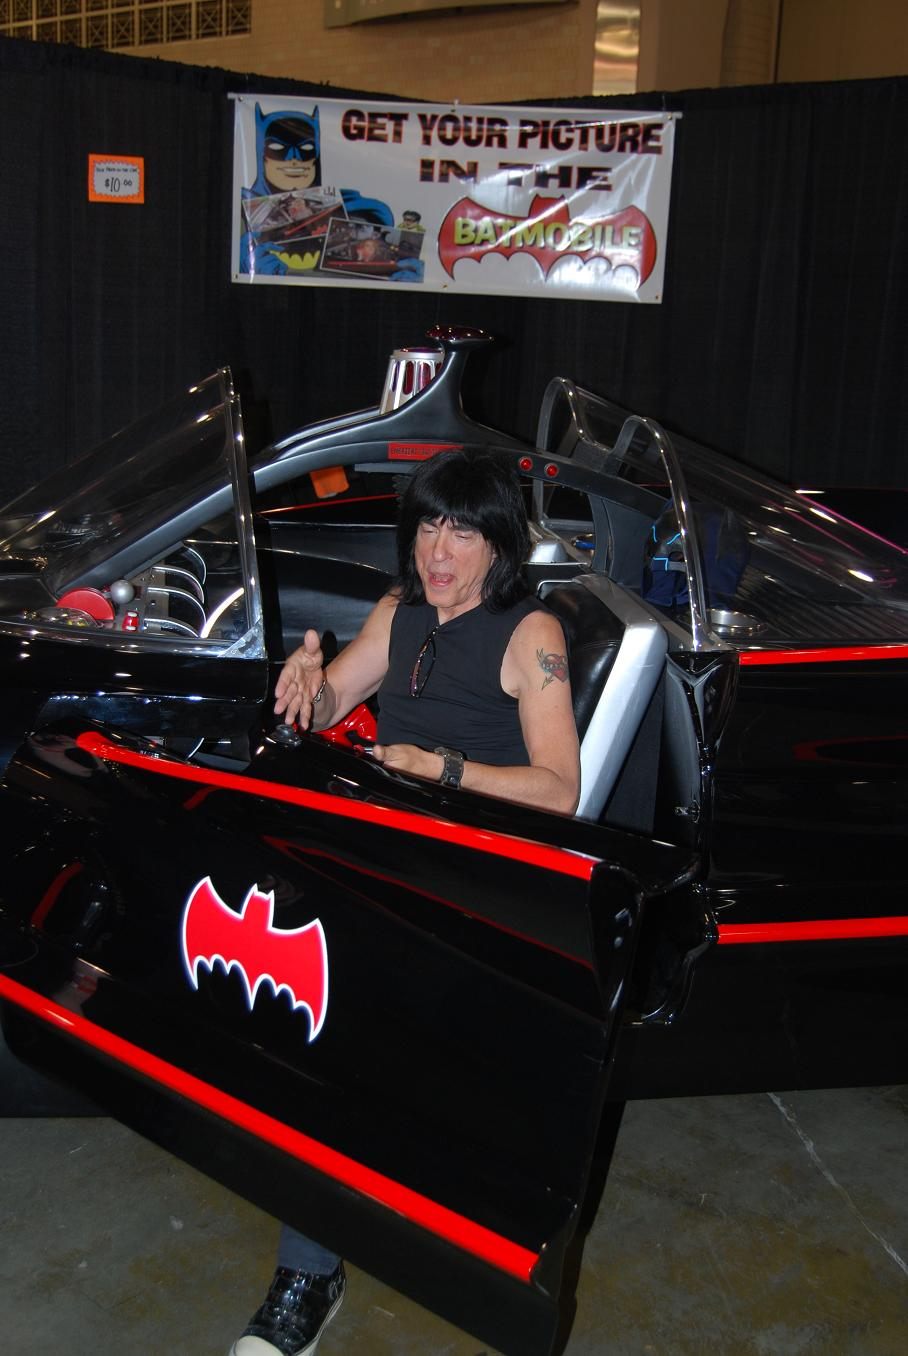 Hey! Ho! Let's go! To the Batmobile! With Marky Ramone!